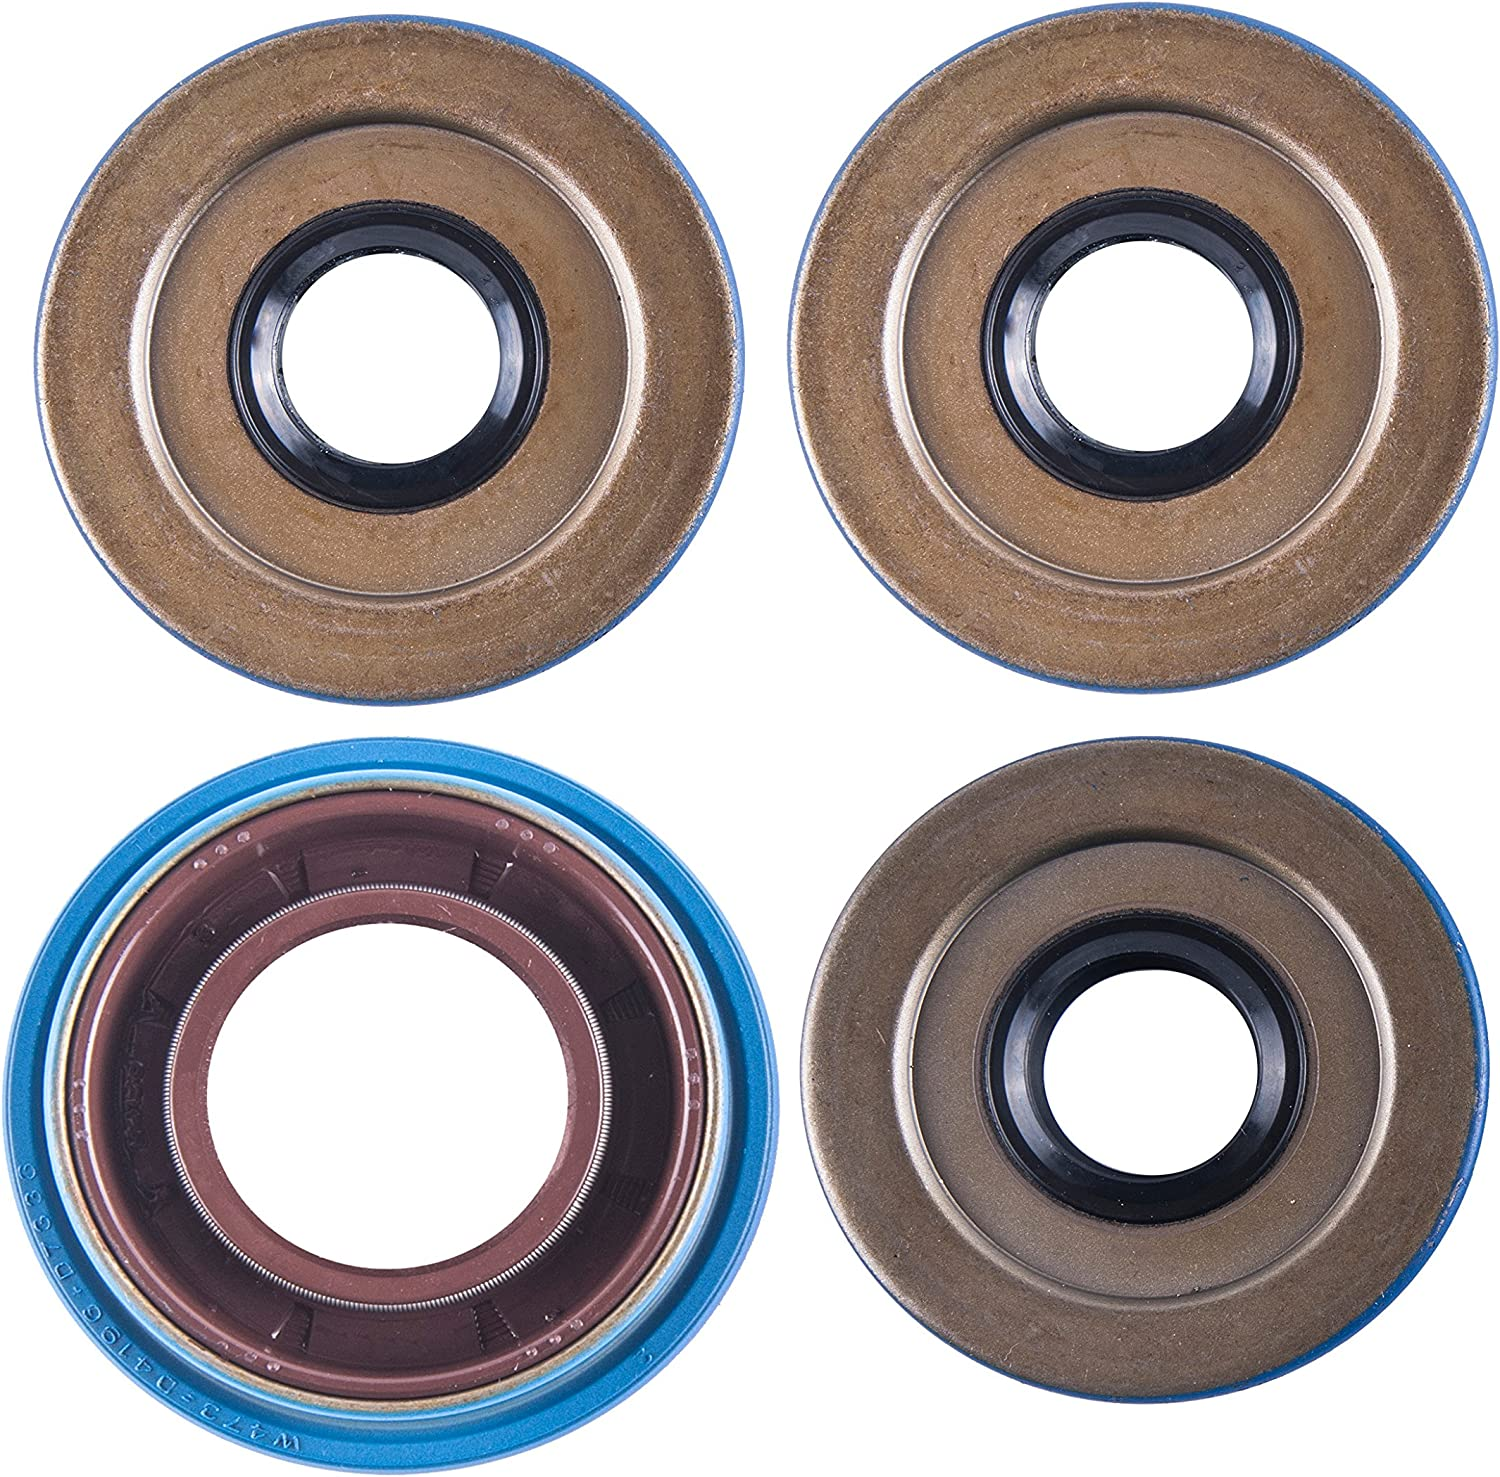 East Lake Axle rear cv axles /& differential seals compatible with Polaris Sportsman 500 Touring//800 HO//X2 2006 2007 2008 2009 2010 2011 2012 2013